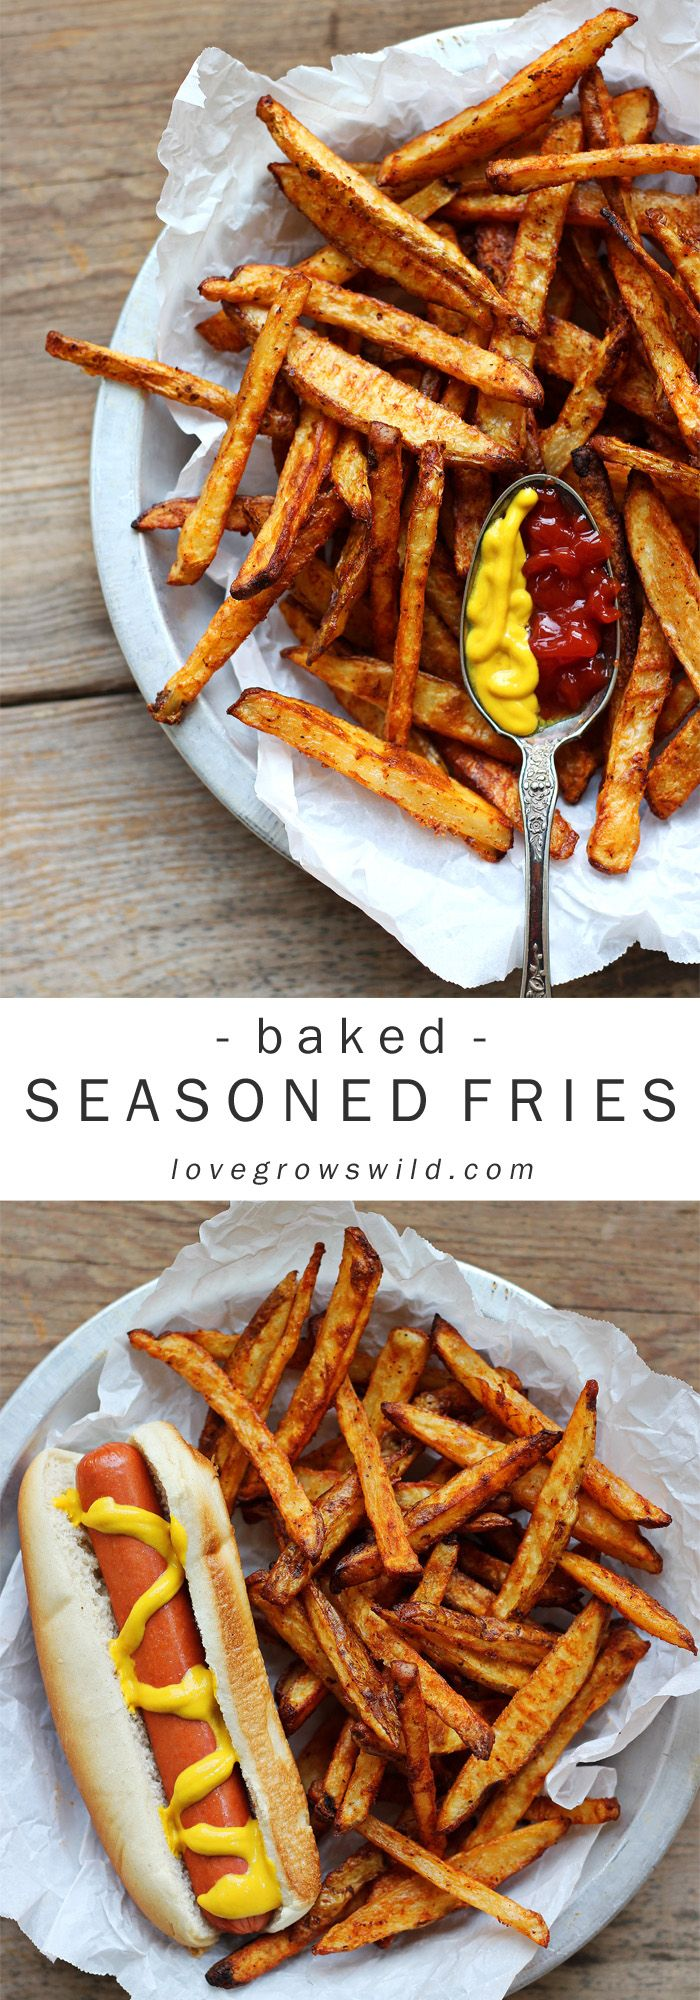 Homemade seasoned fries - baked, not fried! Get the secret to ...